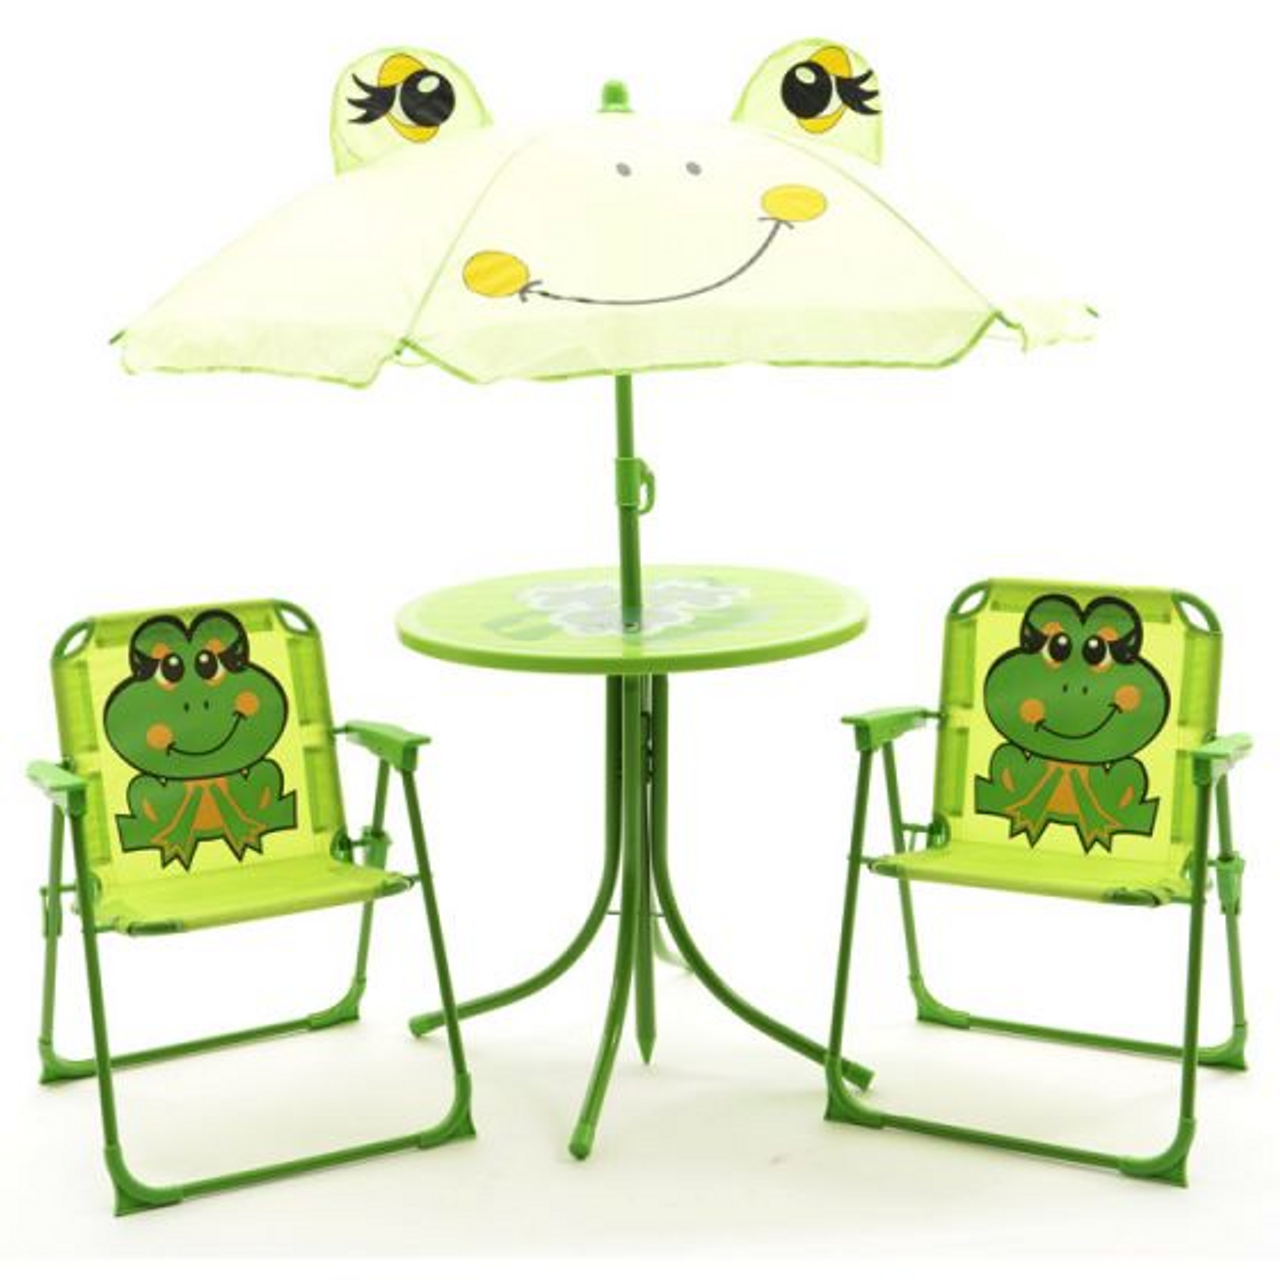 Frog Kids Patio Set  sc 1 st  The Orchard & Frog Kids Patio Set - The Orchard Garden Centre